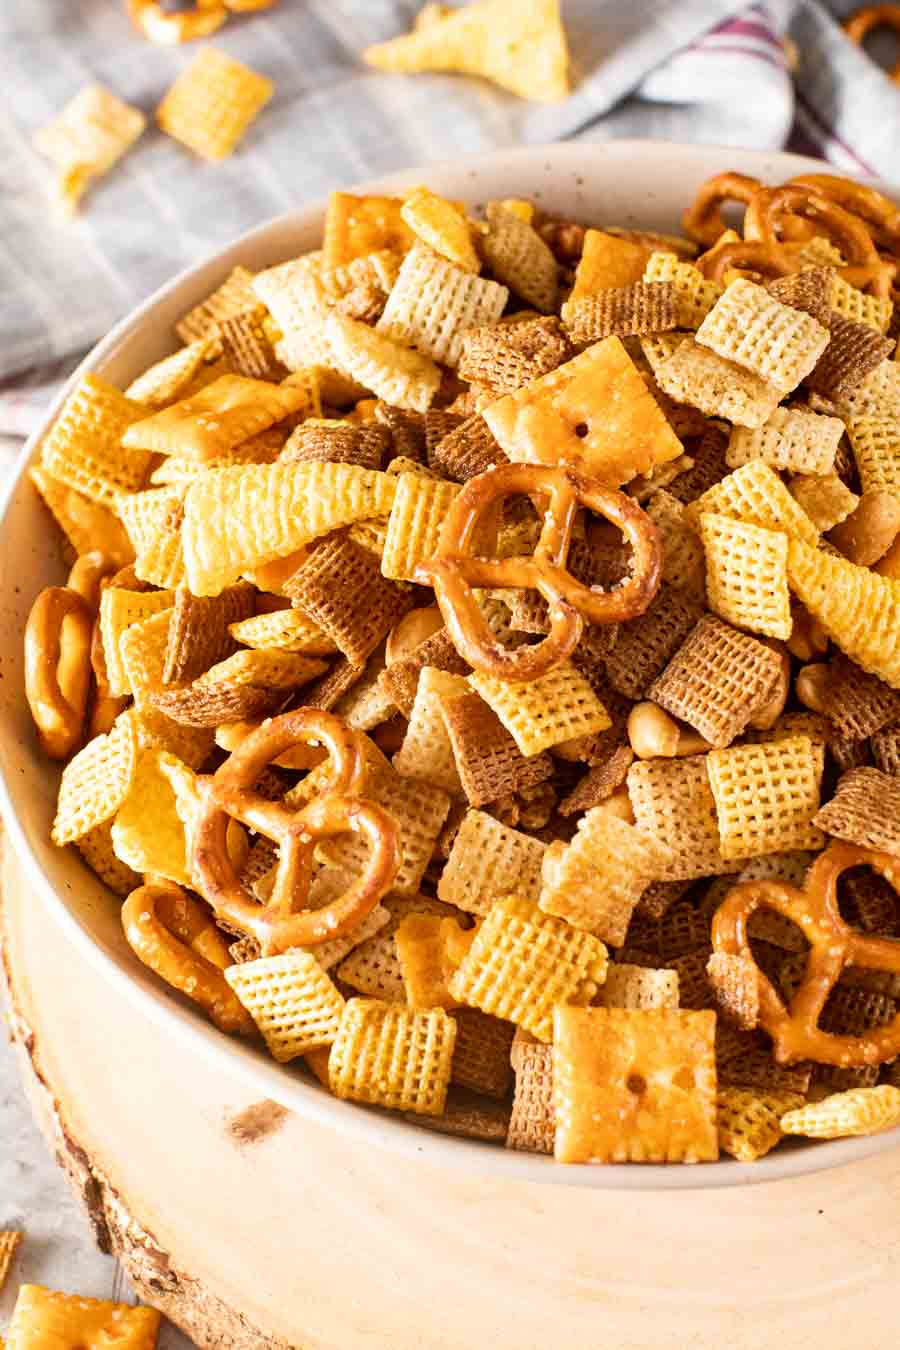 Bowl of Smoked Snack Mix